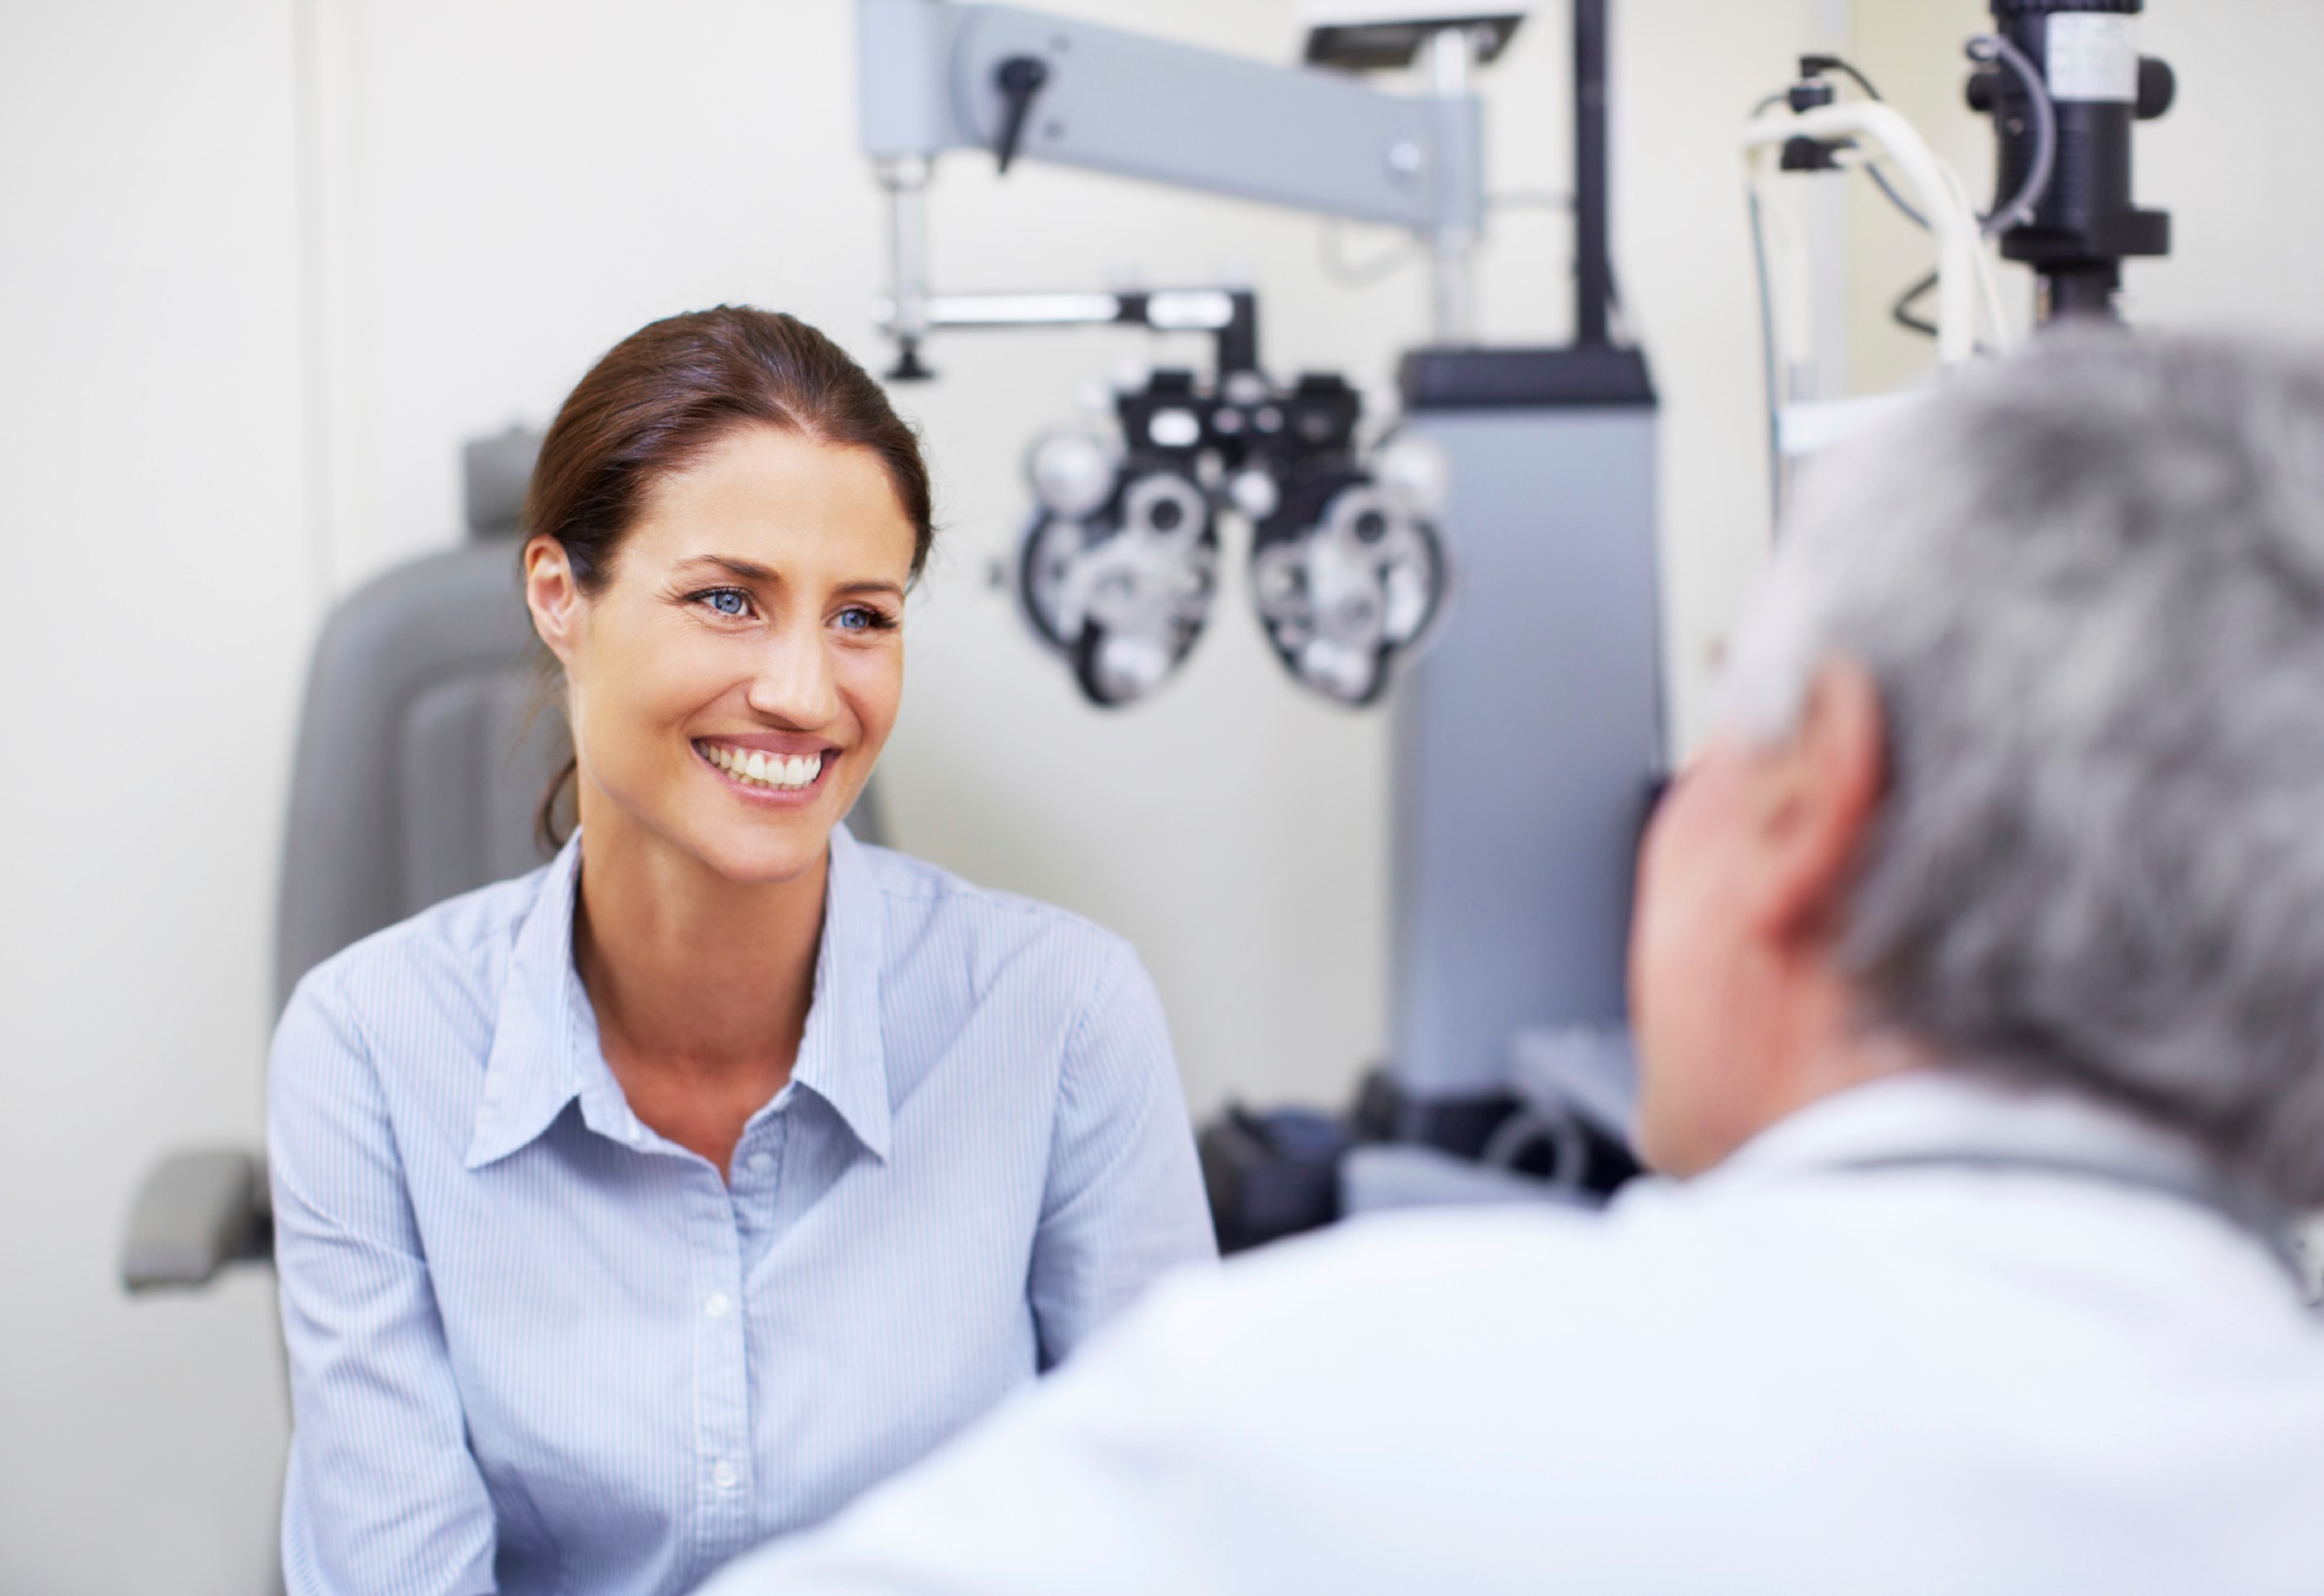 IcareLabs wants to help your optical increase patient satisfaction